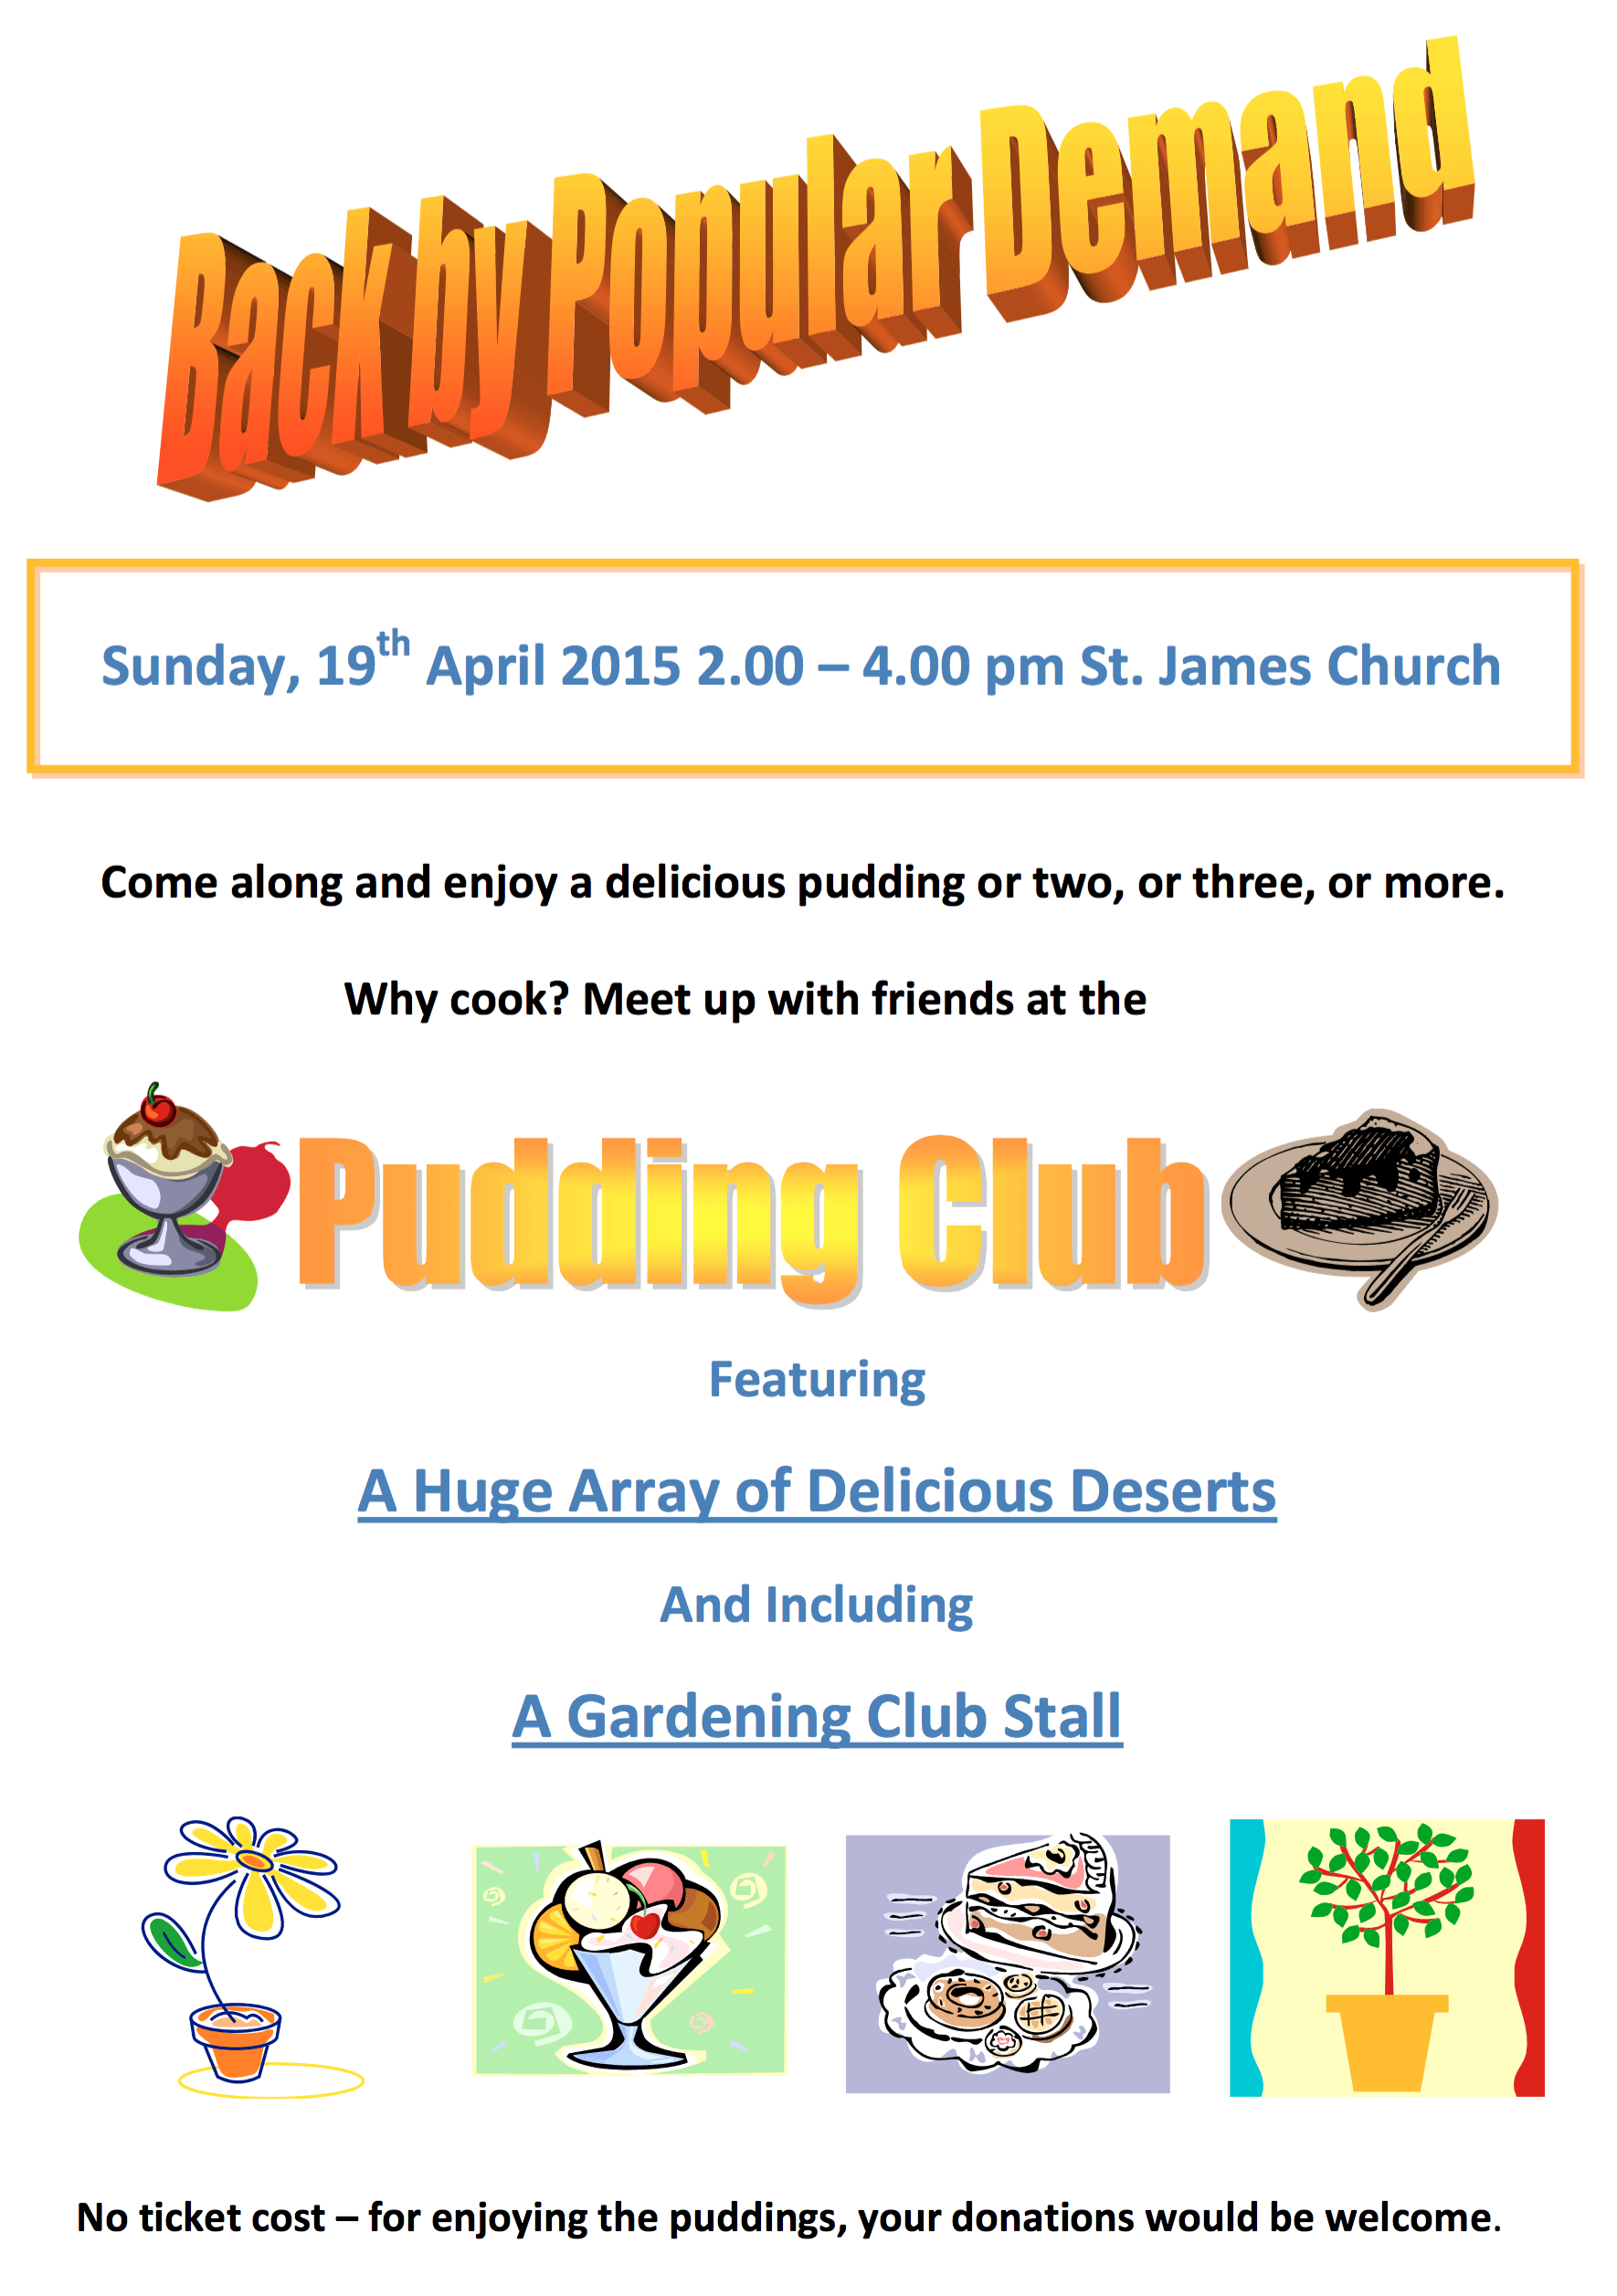 Flyer for pudding club